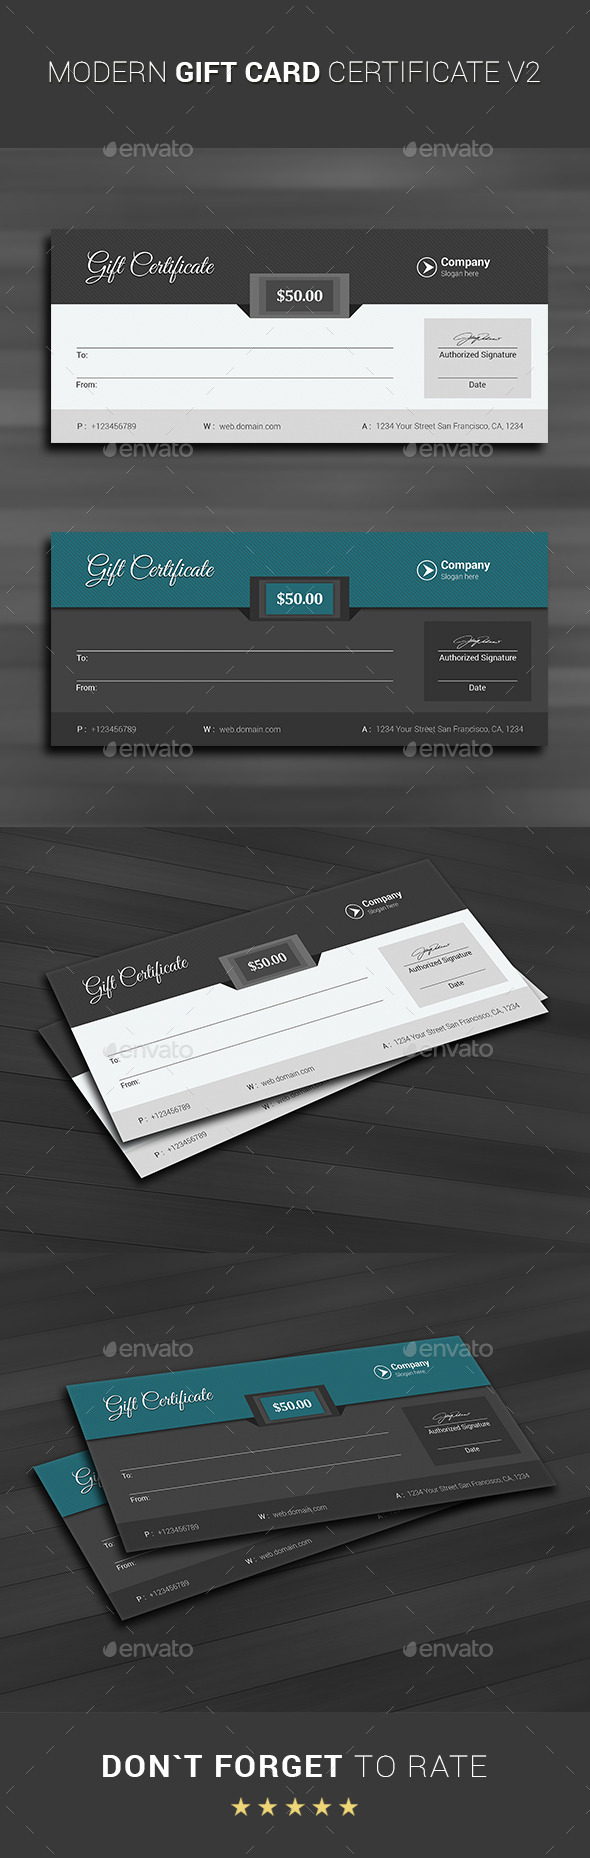 GraphicRiver Modern Gift Card Certificate v2 11452440